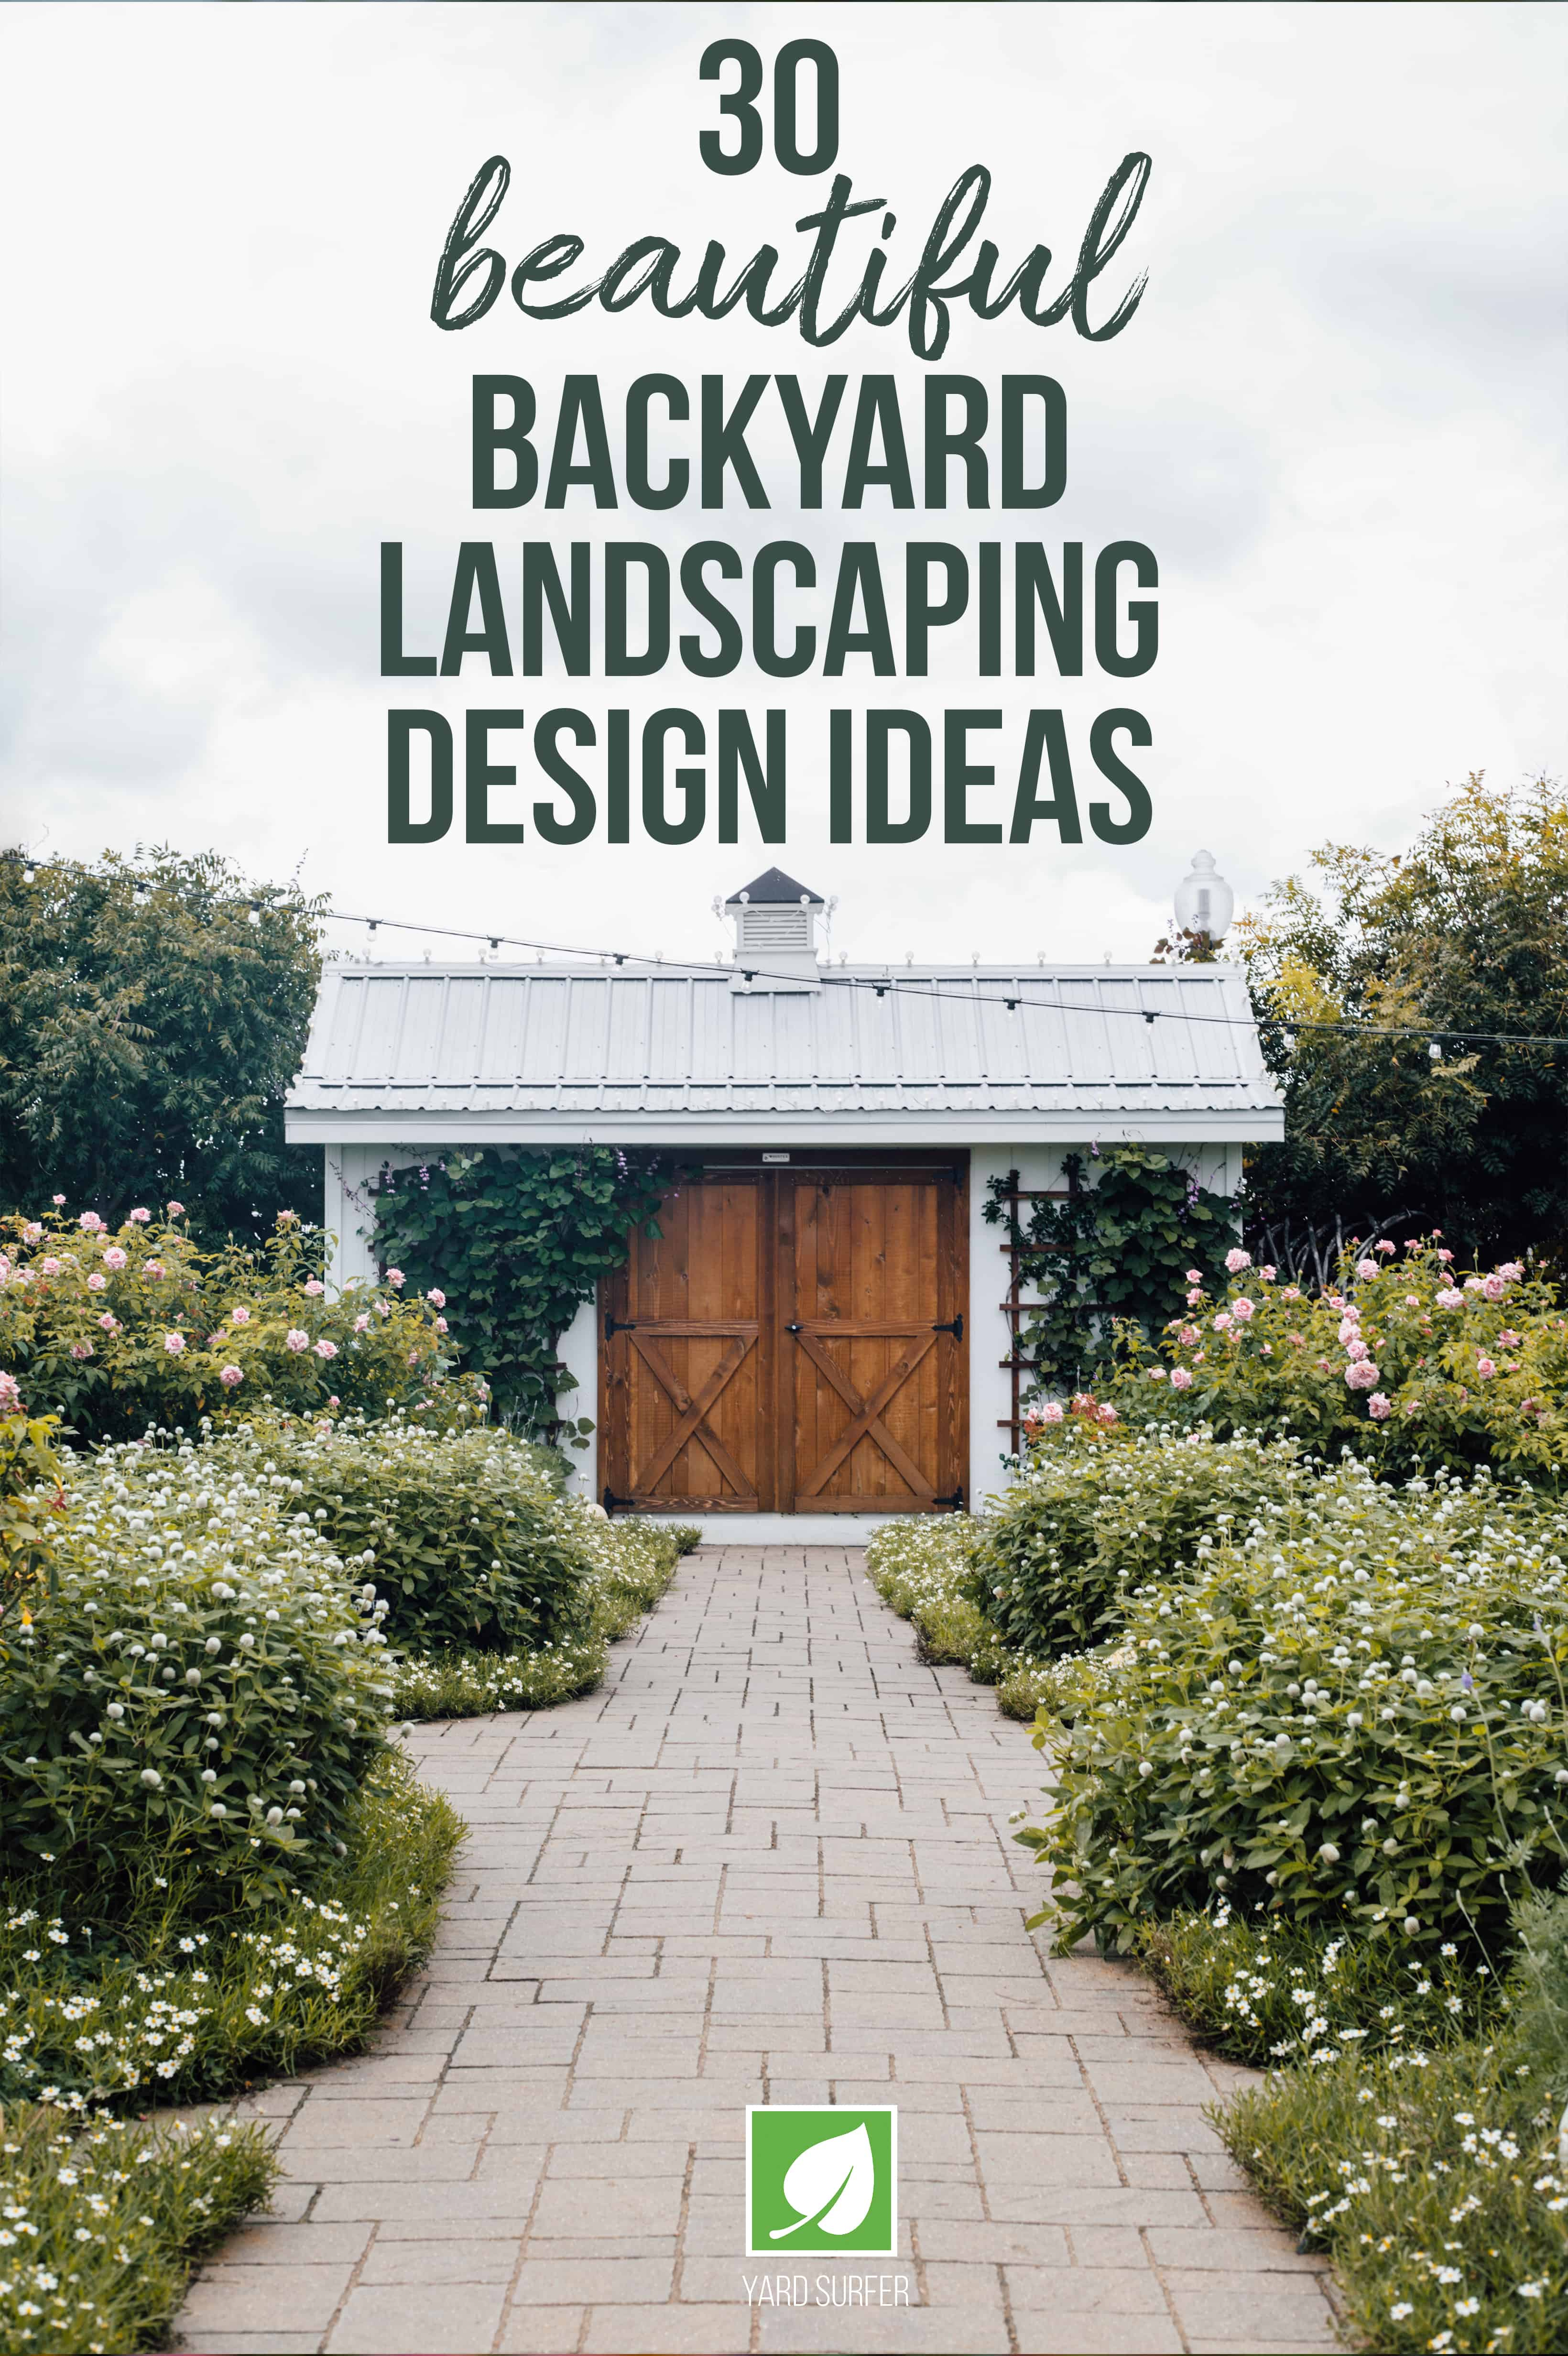 30 Beautiful Backyard Landscaping Design Ideas Yard Surfer regarding 12 Smart Concepts of How to Makeover Landscaping Plans Backyard